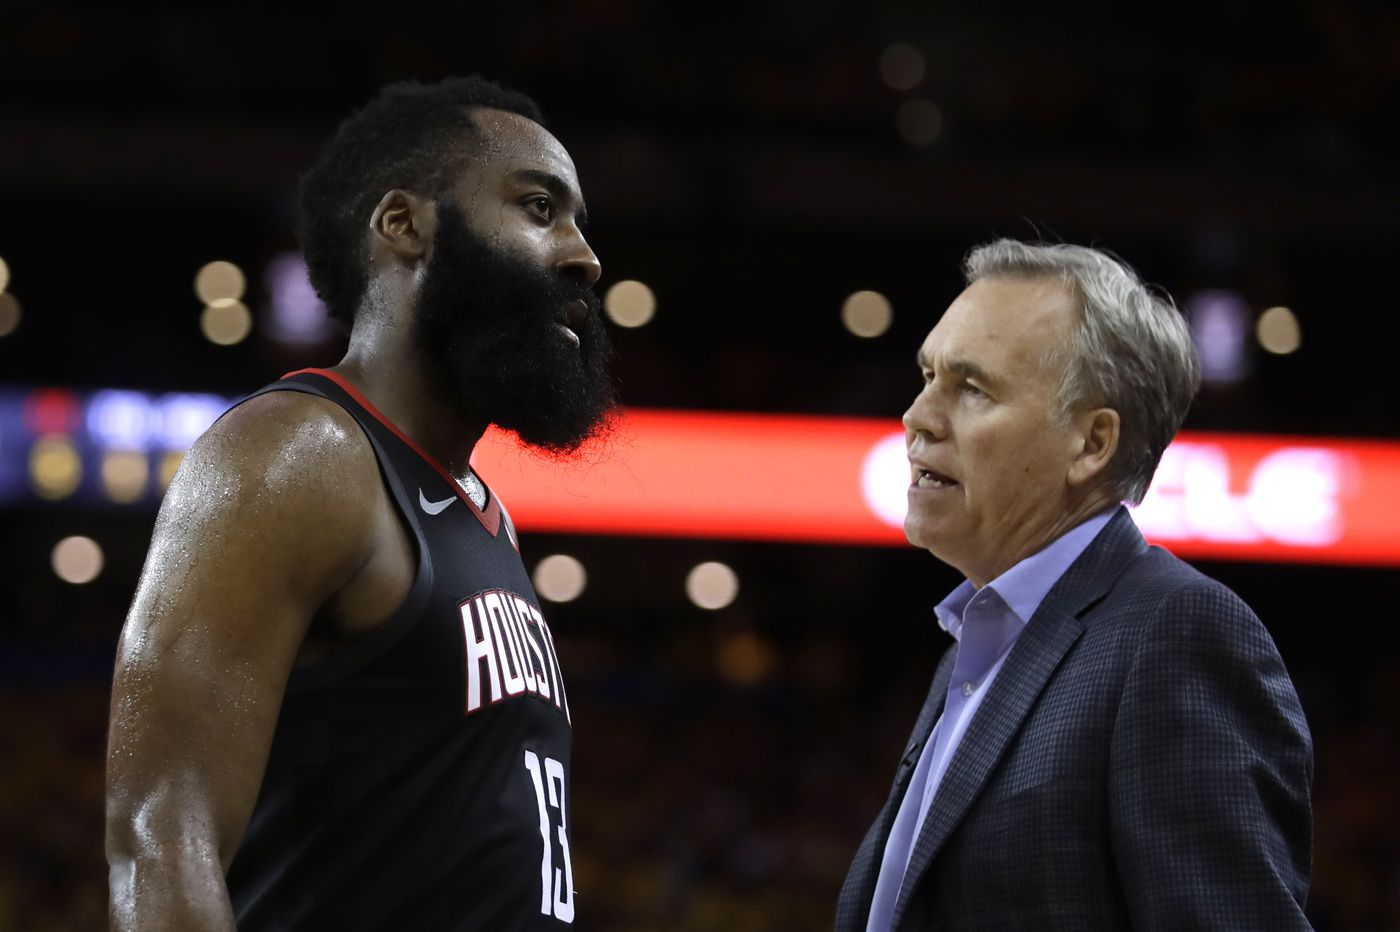 Reuniting Mike D'Antoni and James Harden as Sixers wouldn't make sense | Mailbag